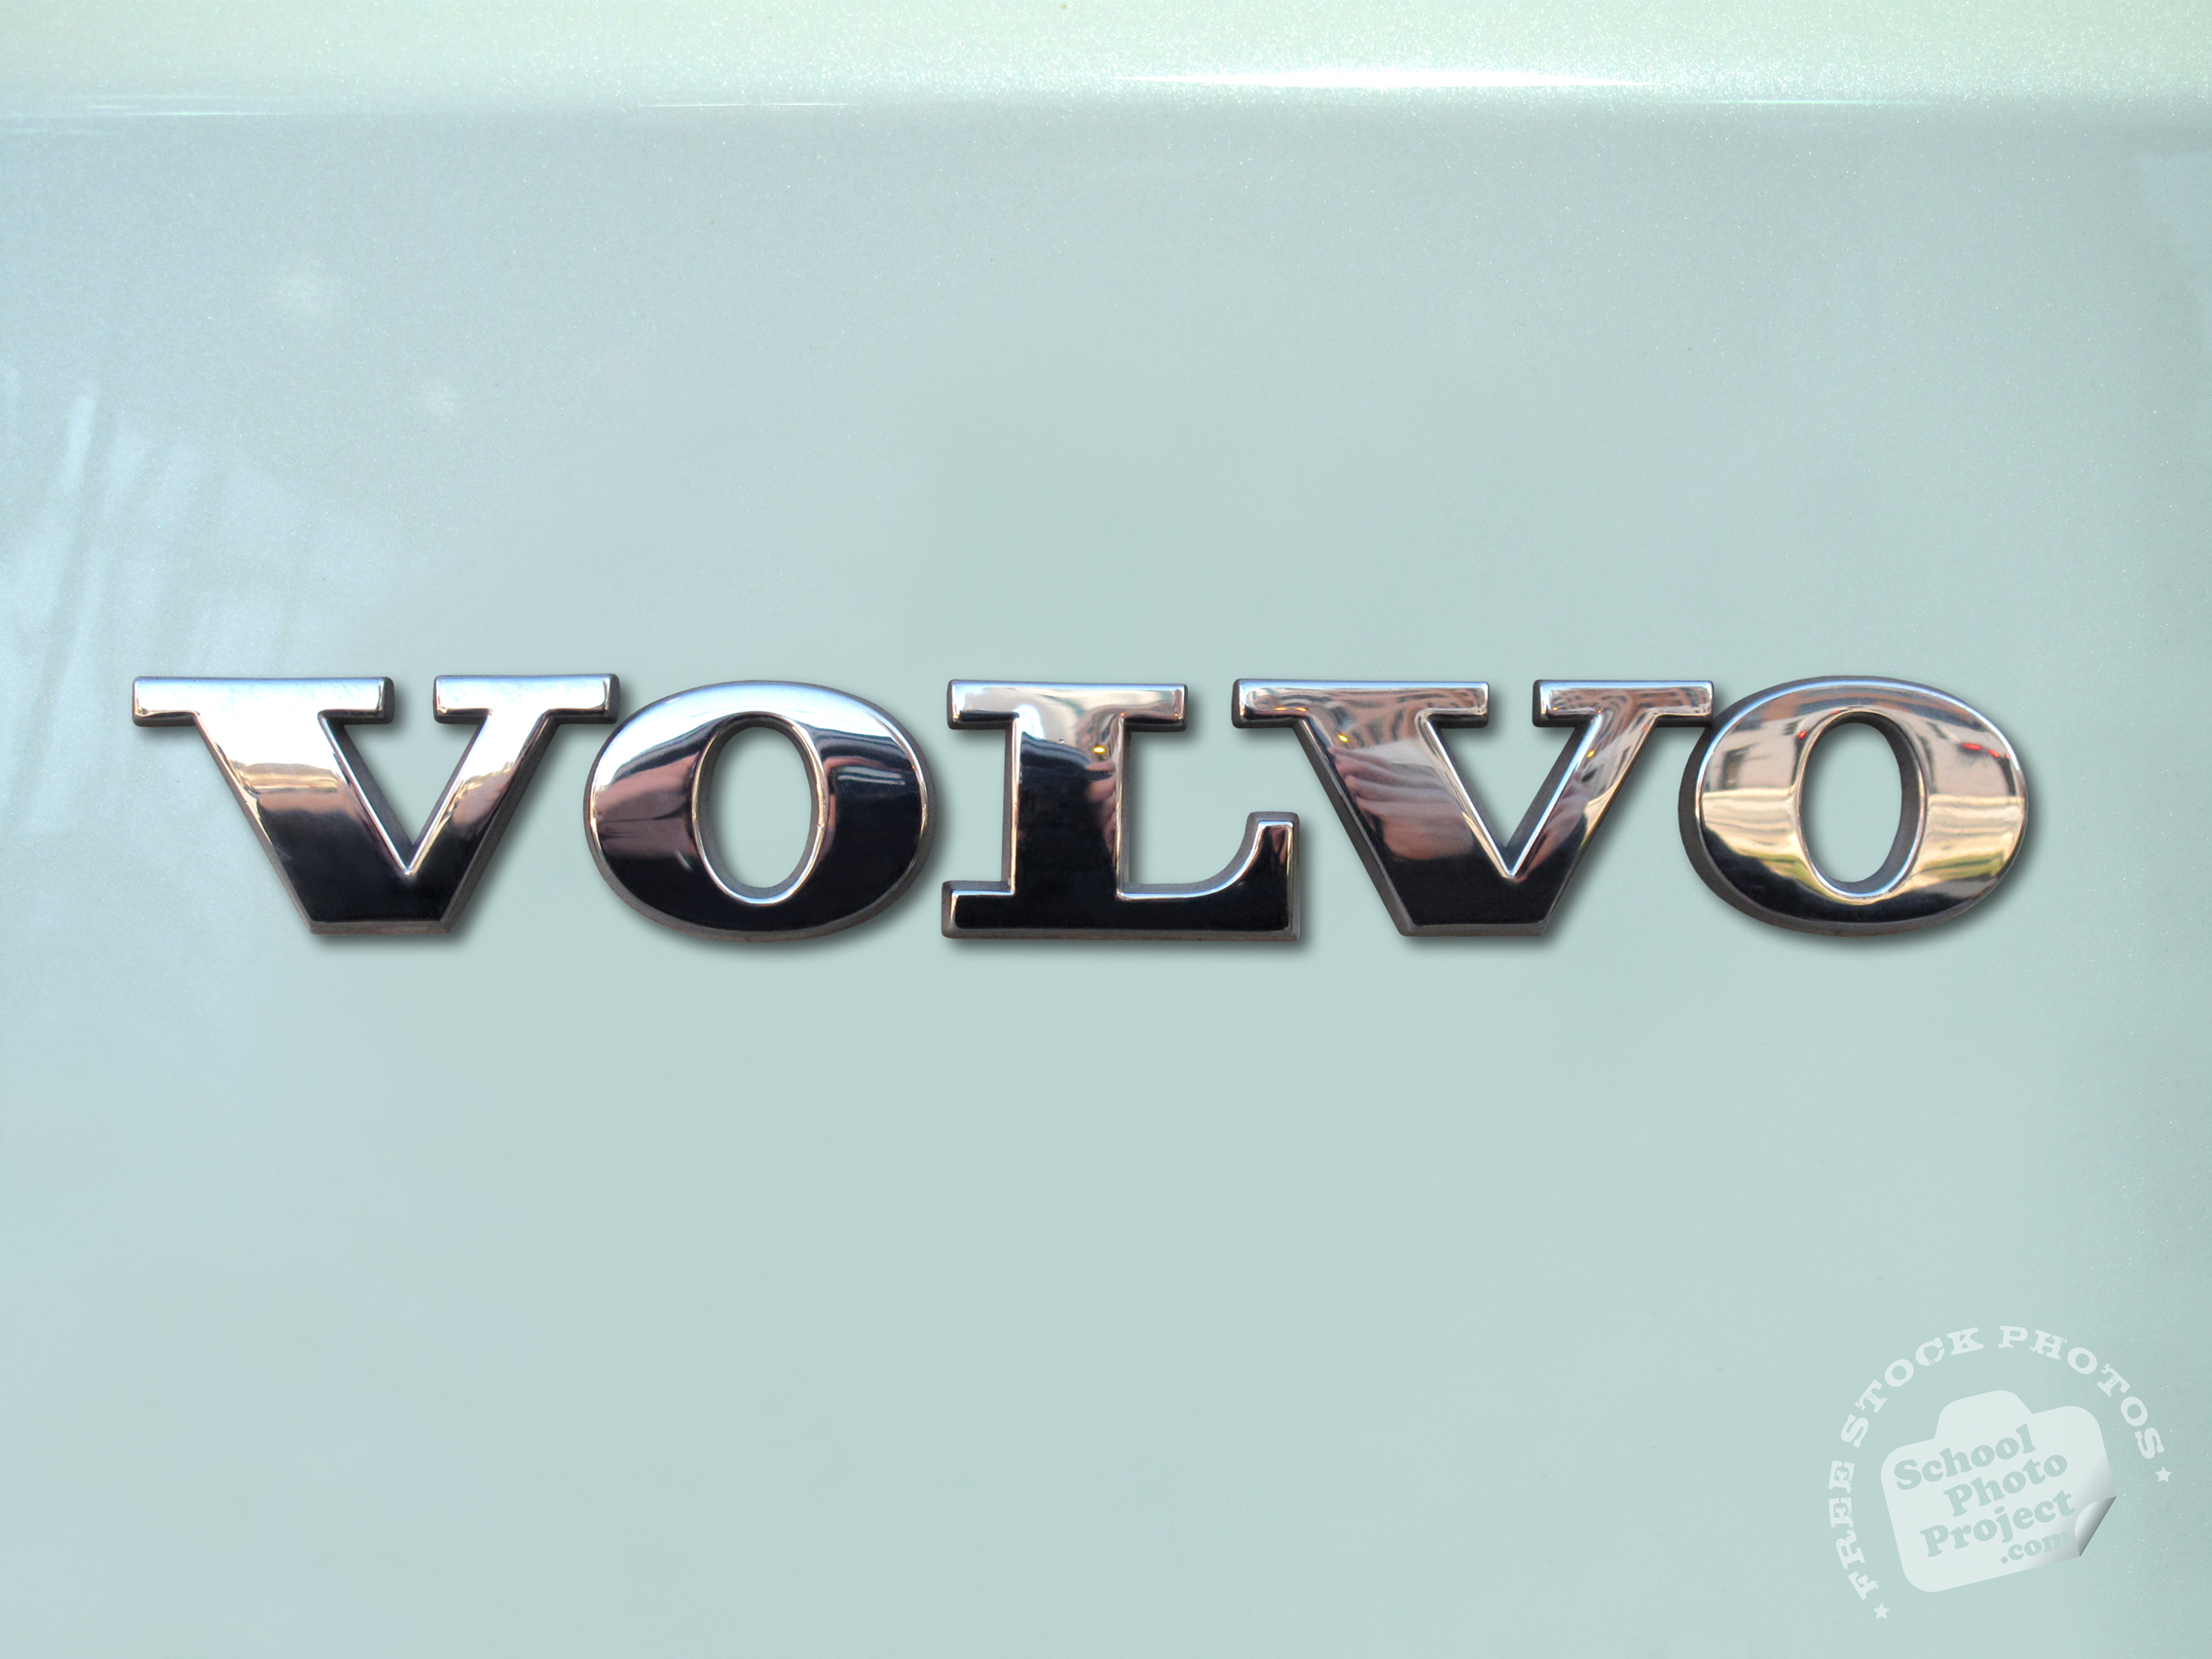 FREE VOLVO Logo, VOLVO Car Type, Famous Car Identity, Royalty-Free Logo Stock Photo, Image, Picture